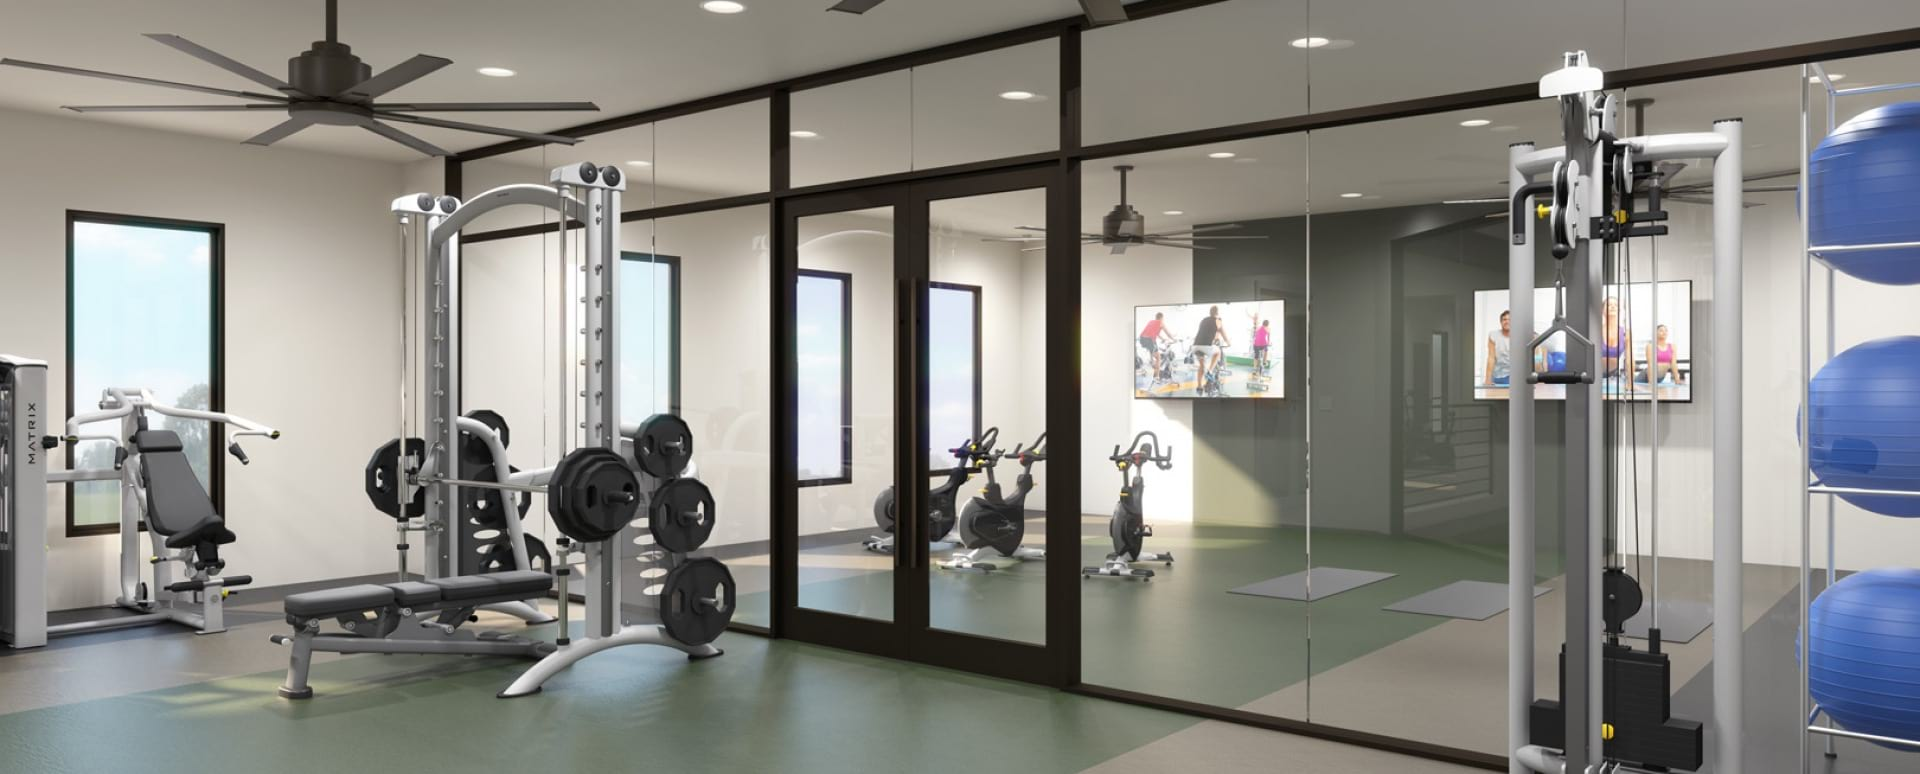 Newly-Renovated Fitness Center